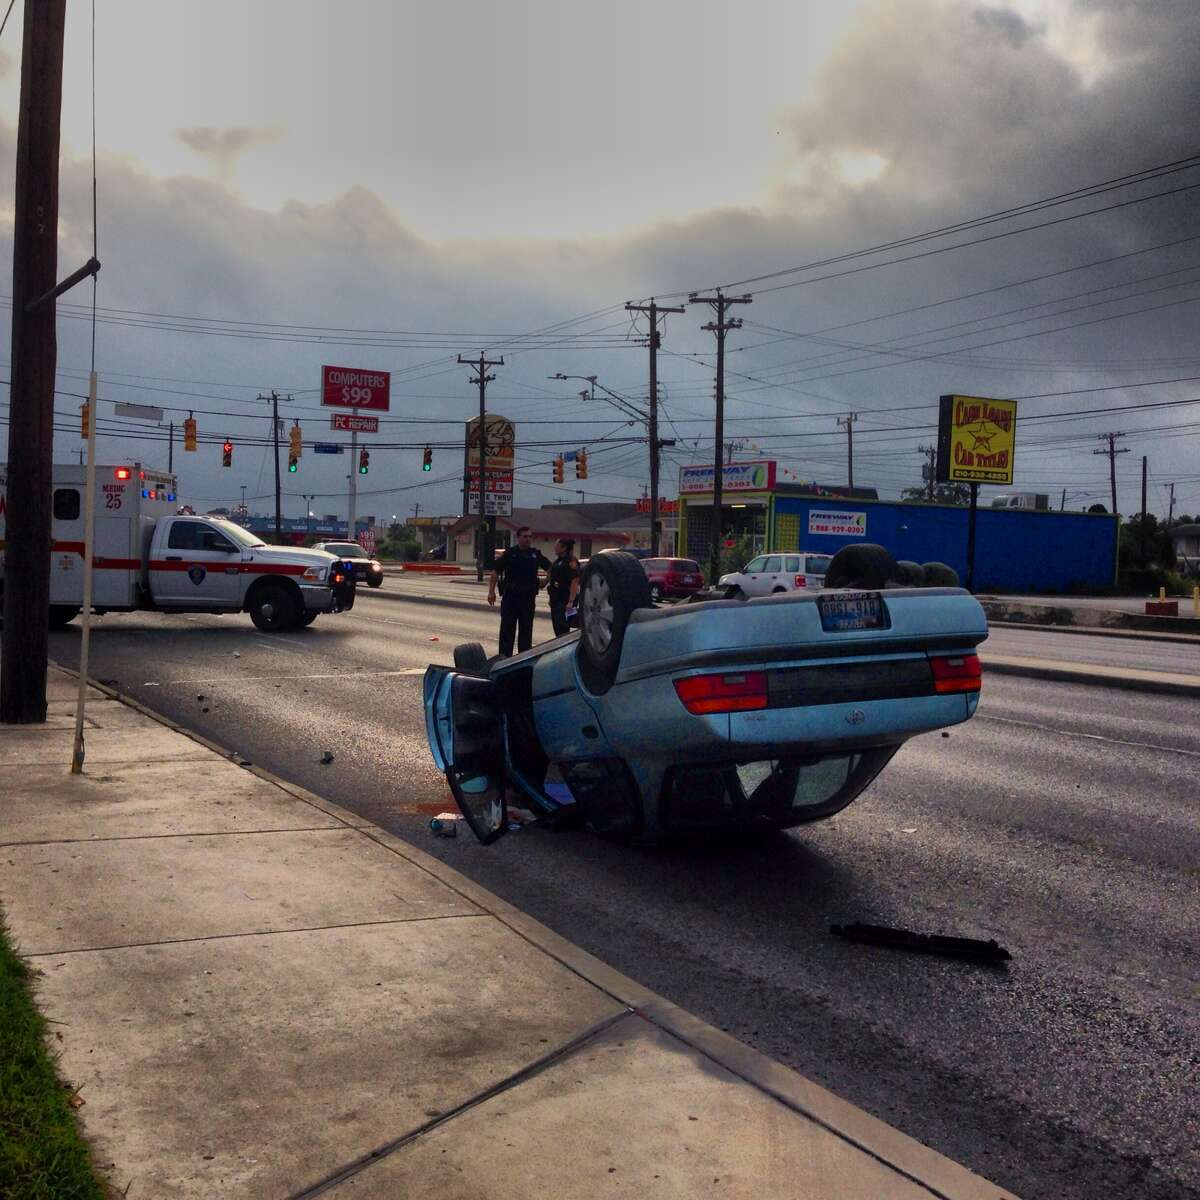 Police said a 24-year-old woman driving a Toyota Corolla clipped a pickup truck at the corner of Northwest Military and Boswell as it was turning into the Whataburger driveway around 7:45 a.m., forcing her car to flip over.